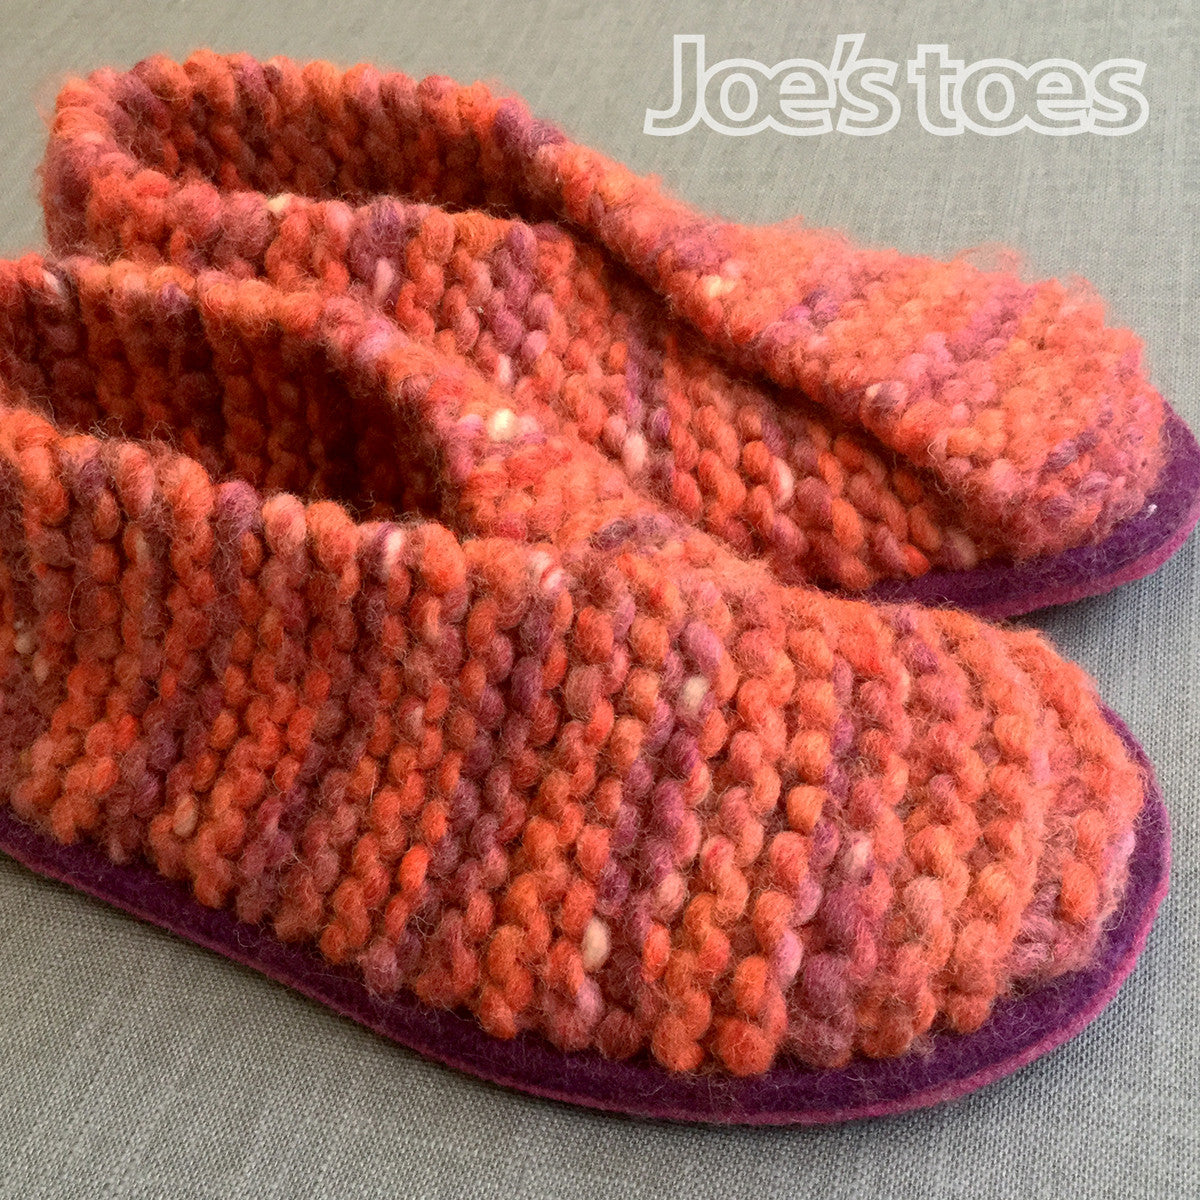 14a83170b69f5 The Original Knitted Crossover slipper kit - UK sizes 1 - 12